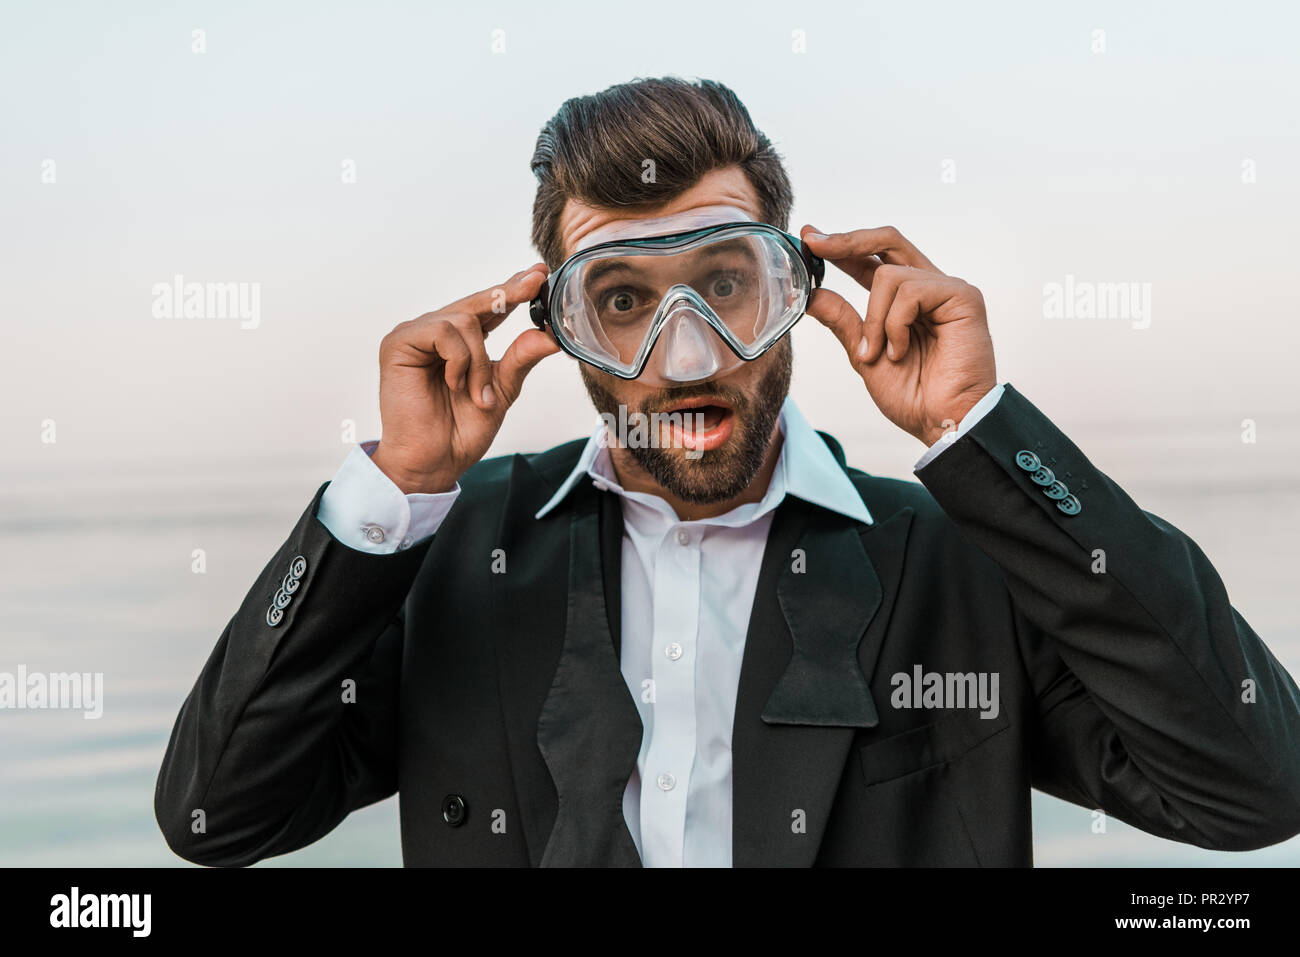 shocked man in black jacket and white shirt touching diving mask near sea Stock Photo